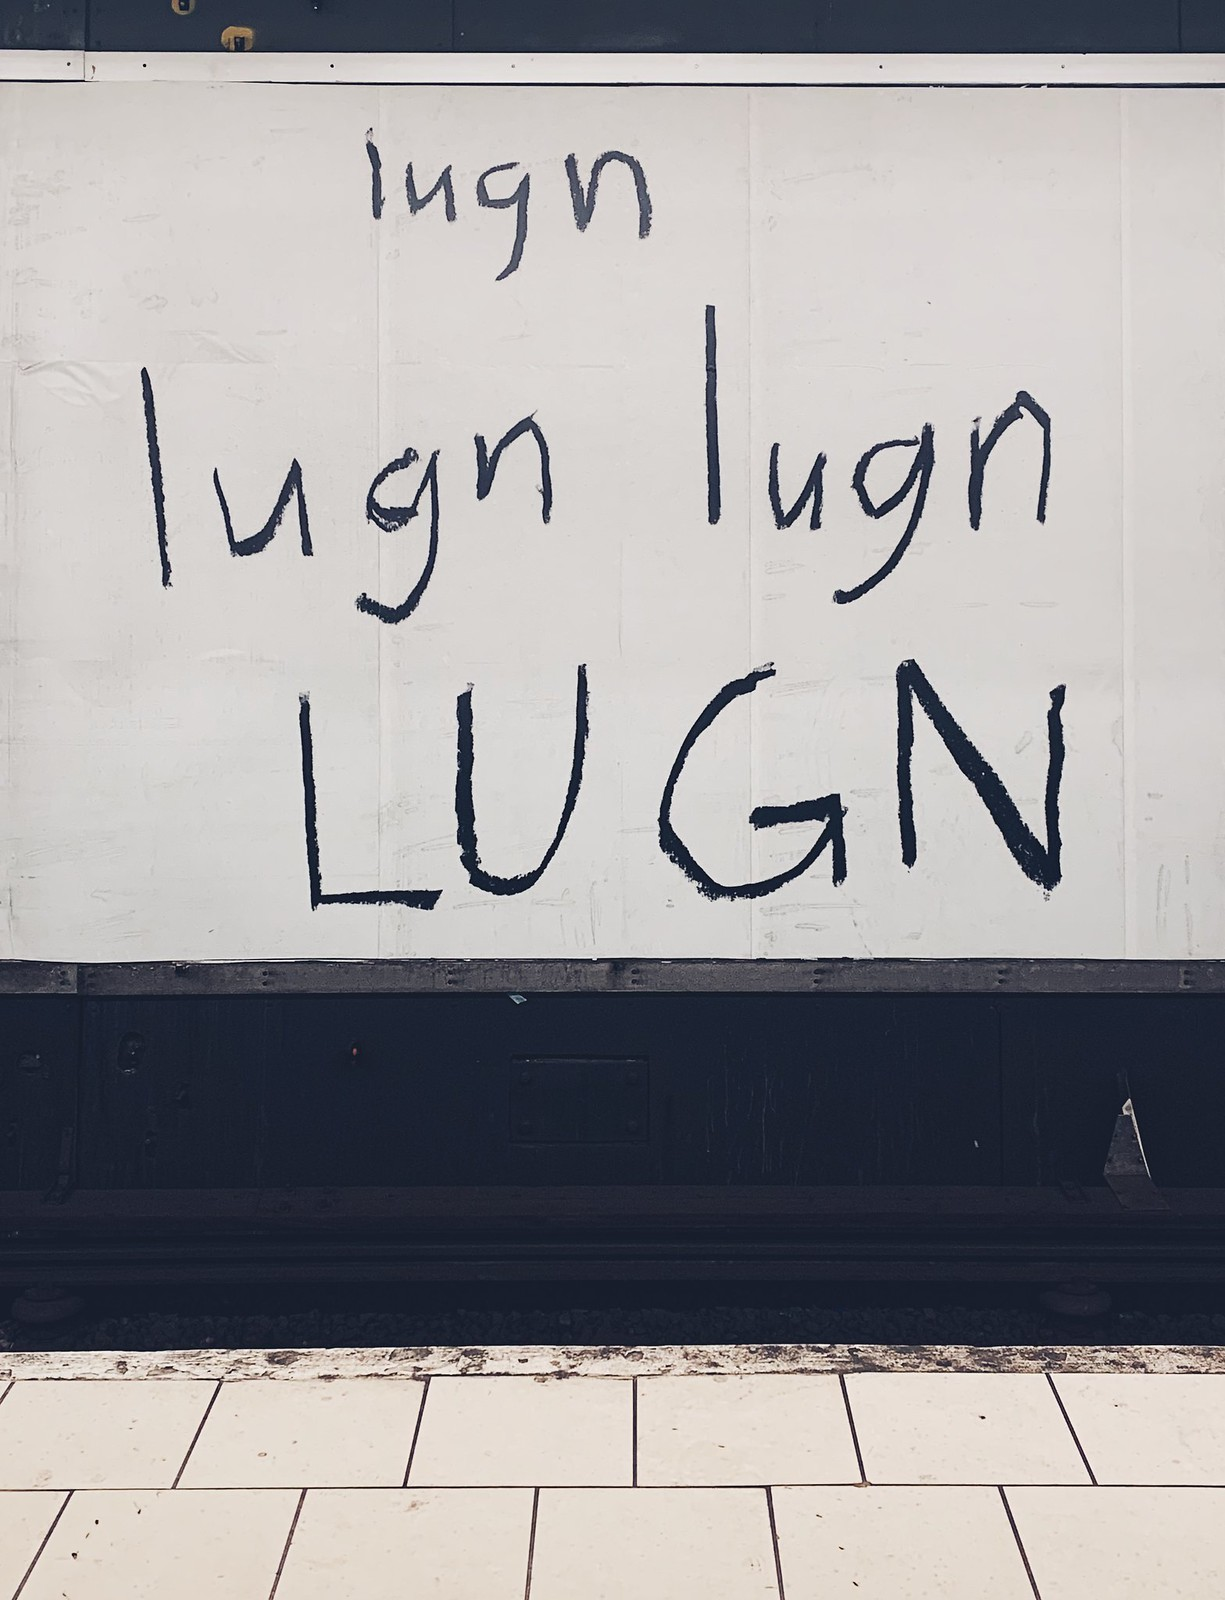 lugn lugn lugn lugn